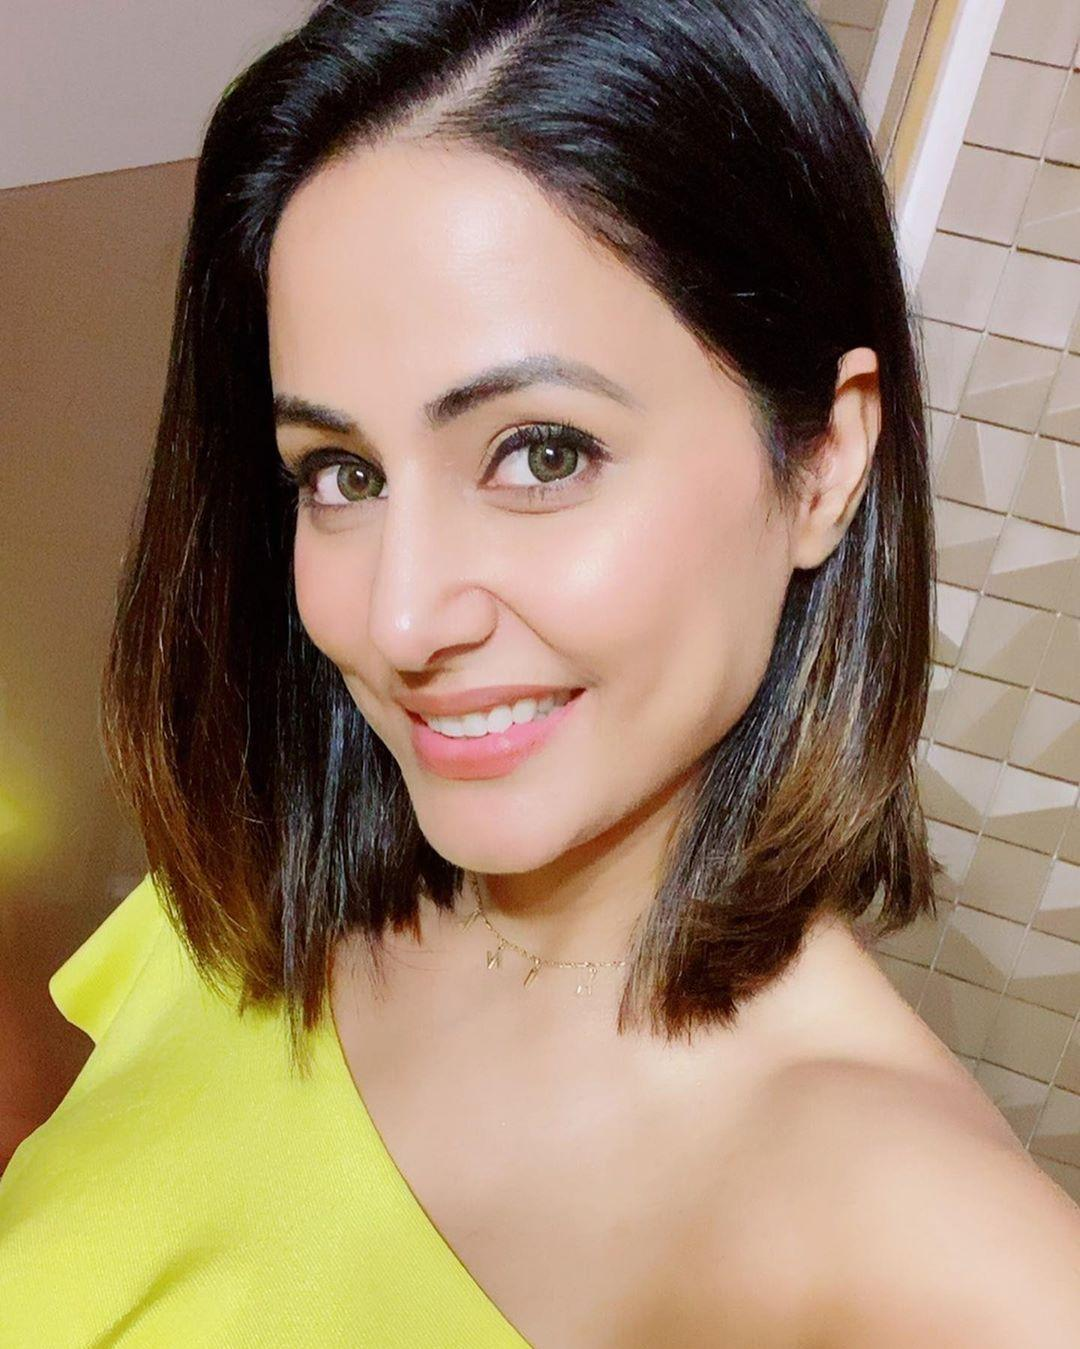 Hina Khan These Photos Of The Actress Prove She Can Pull Off Short Hair Like A Star